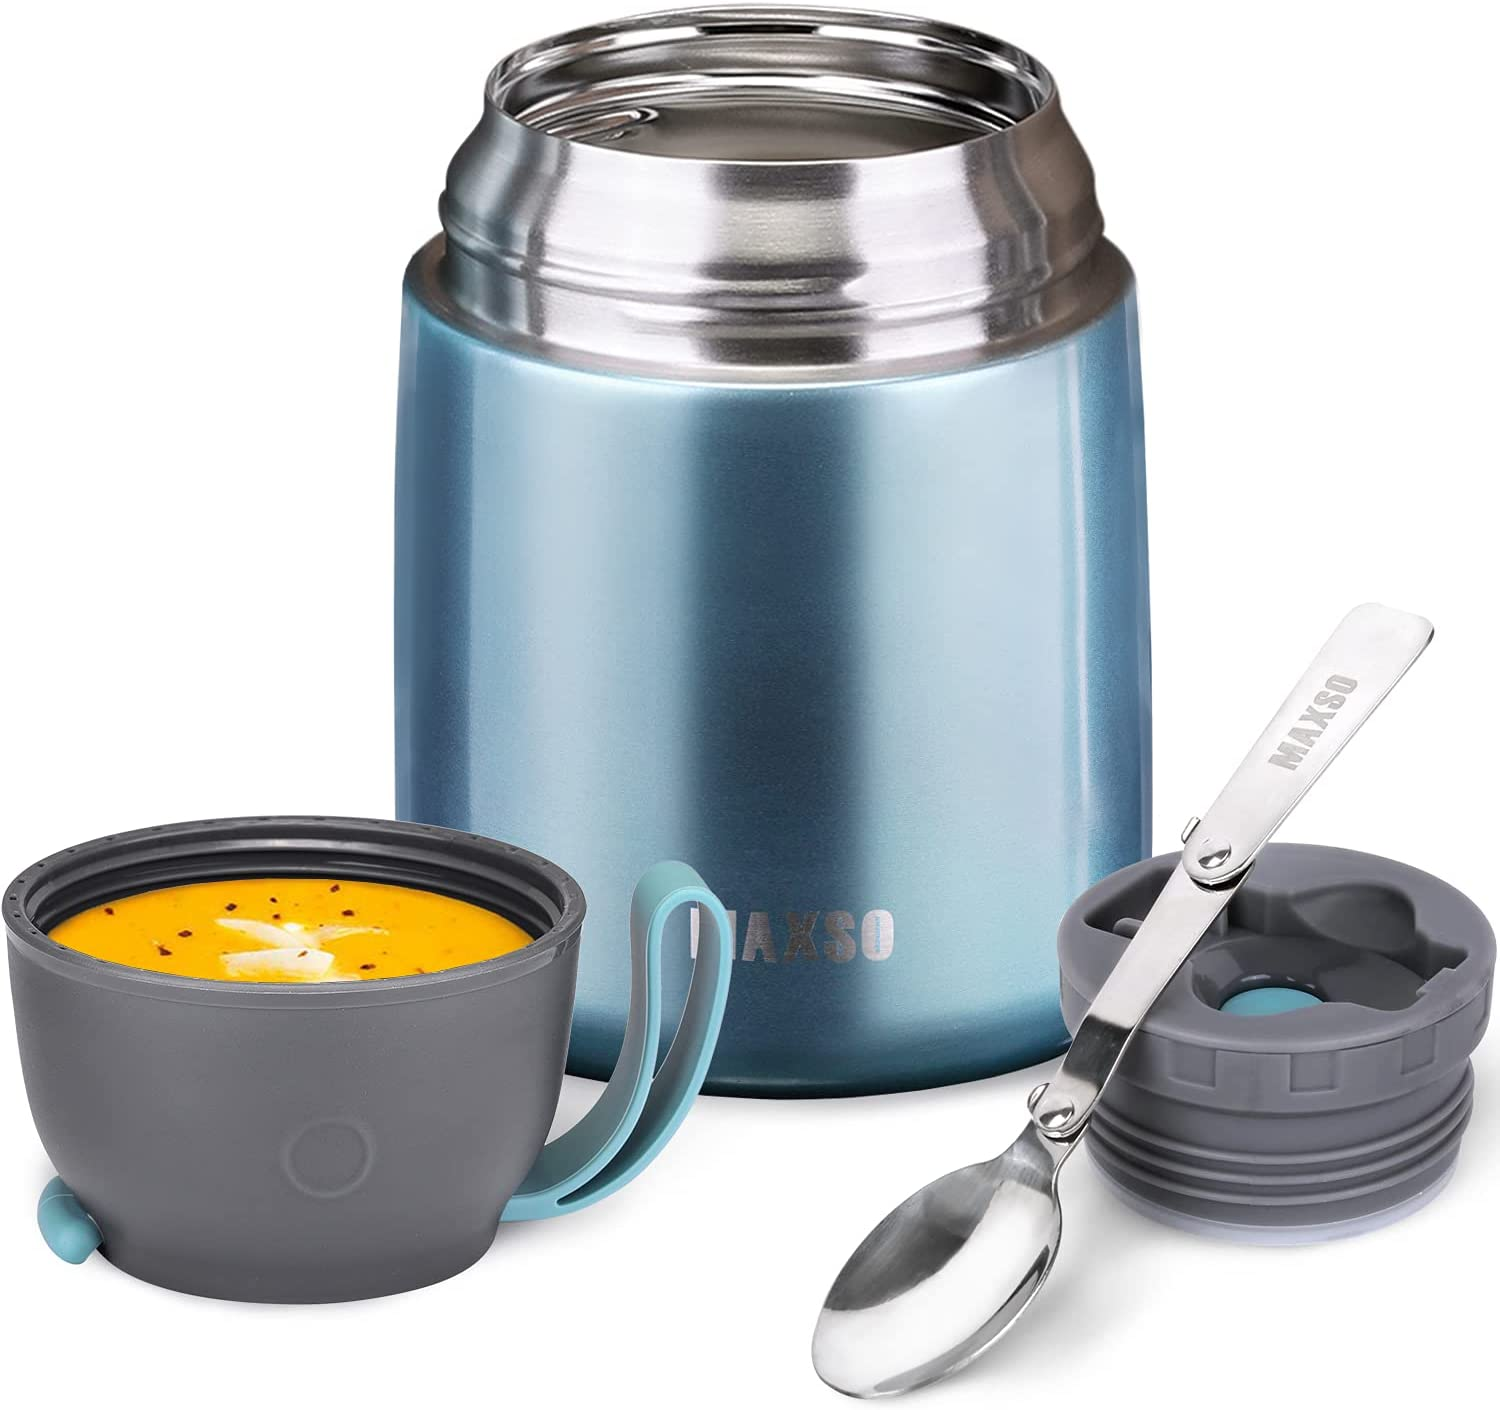 Thermos Food Jar for Hot & Cold Food for Kids Adult, 17 oz Set Soup Thermos Hot Food Containers for Lunch, Insulated Food Jar with Spoon, Metallic Light Blue (1pack)